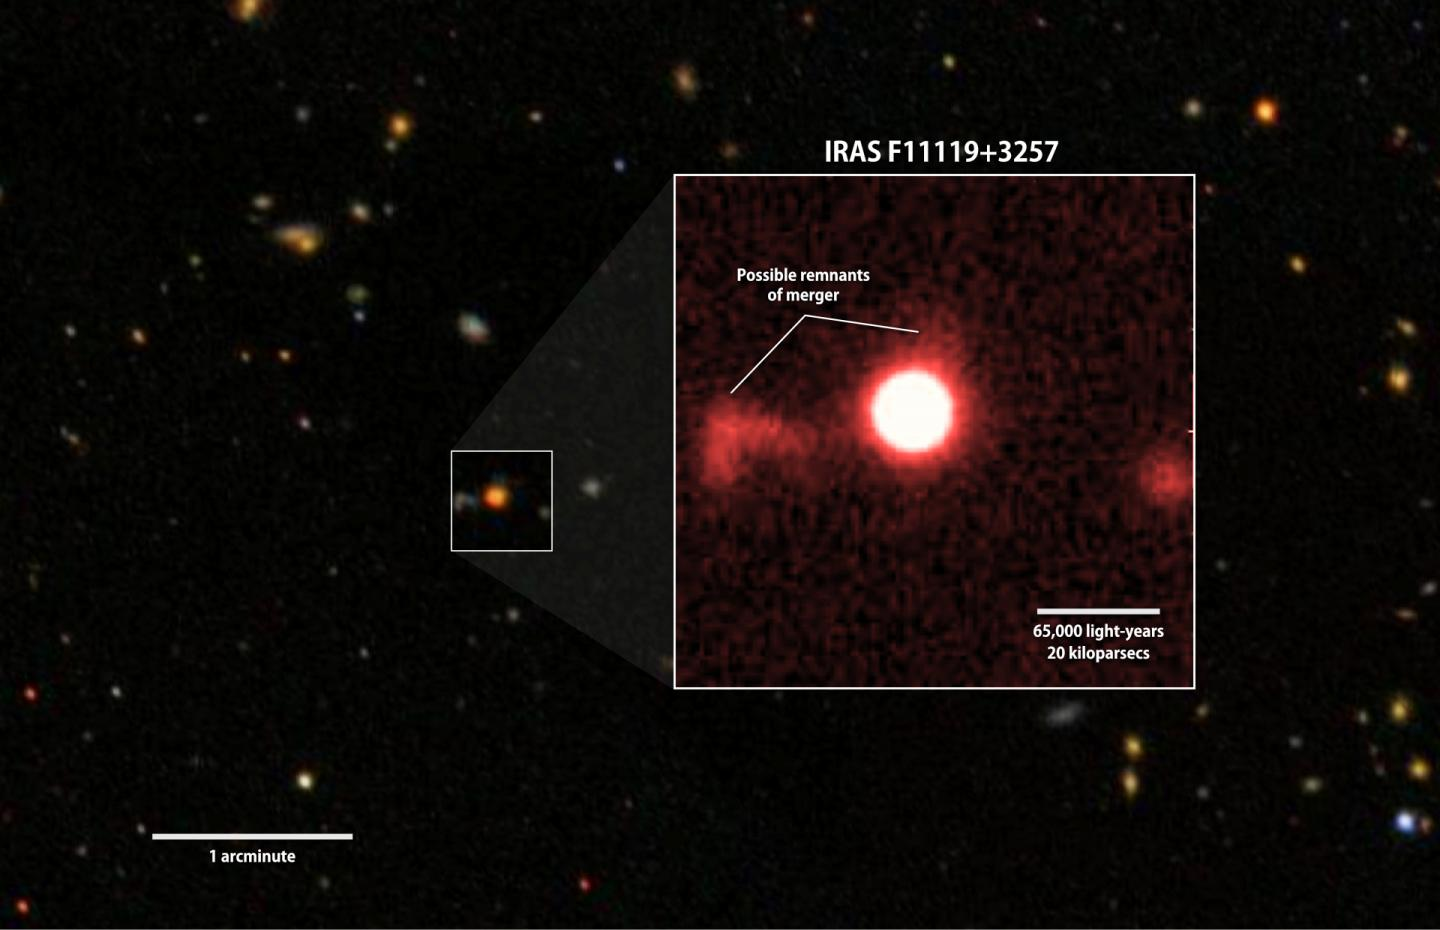 A Red-Filter Image of IRAS F11119+3257